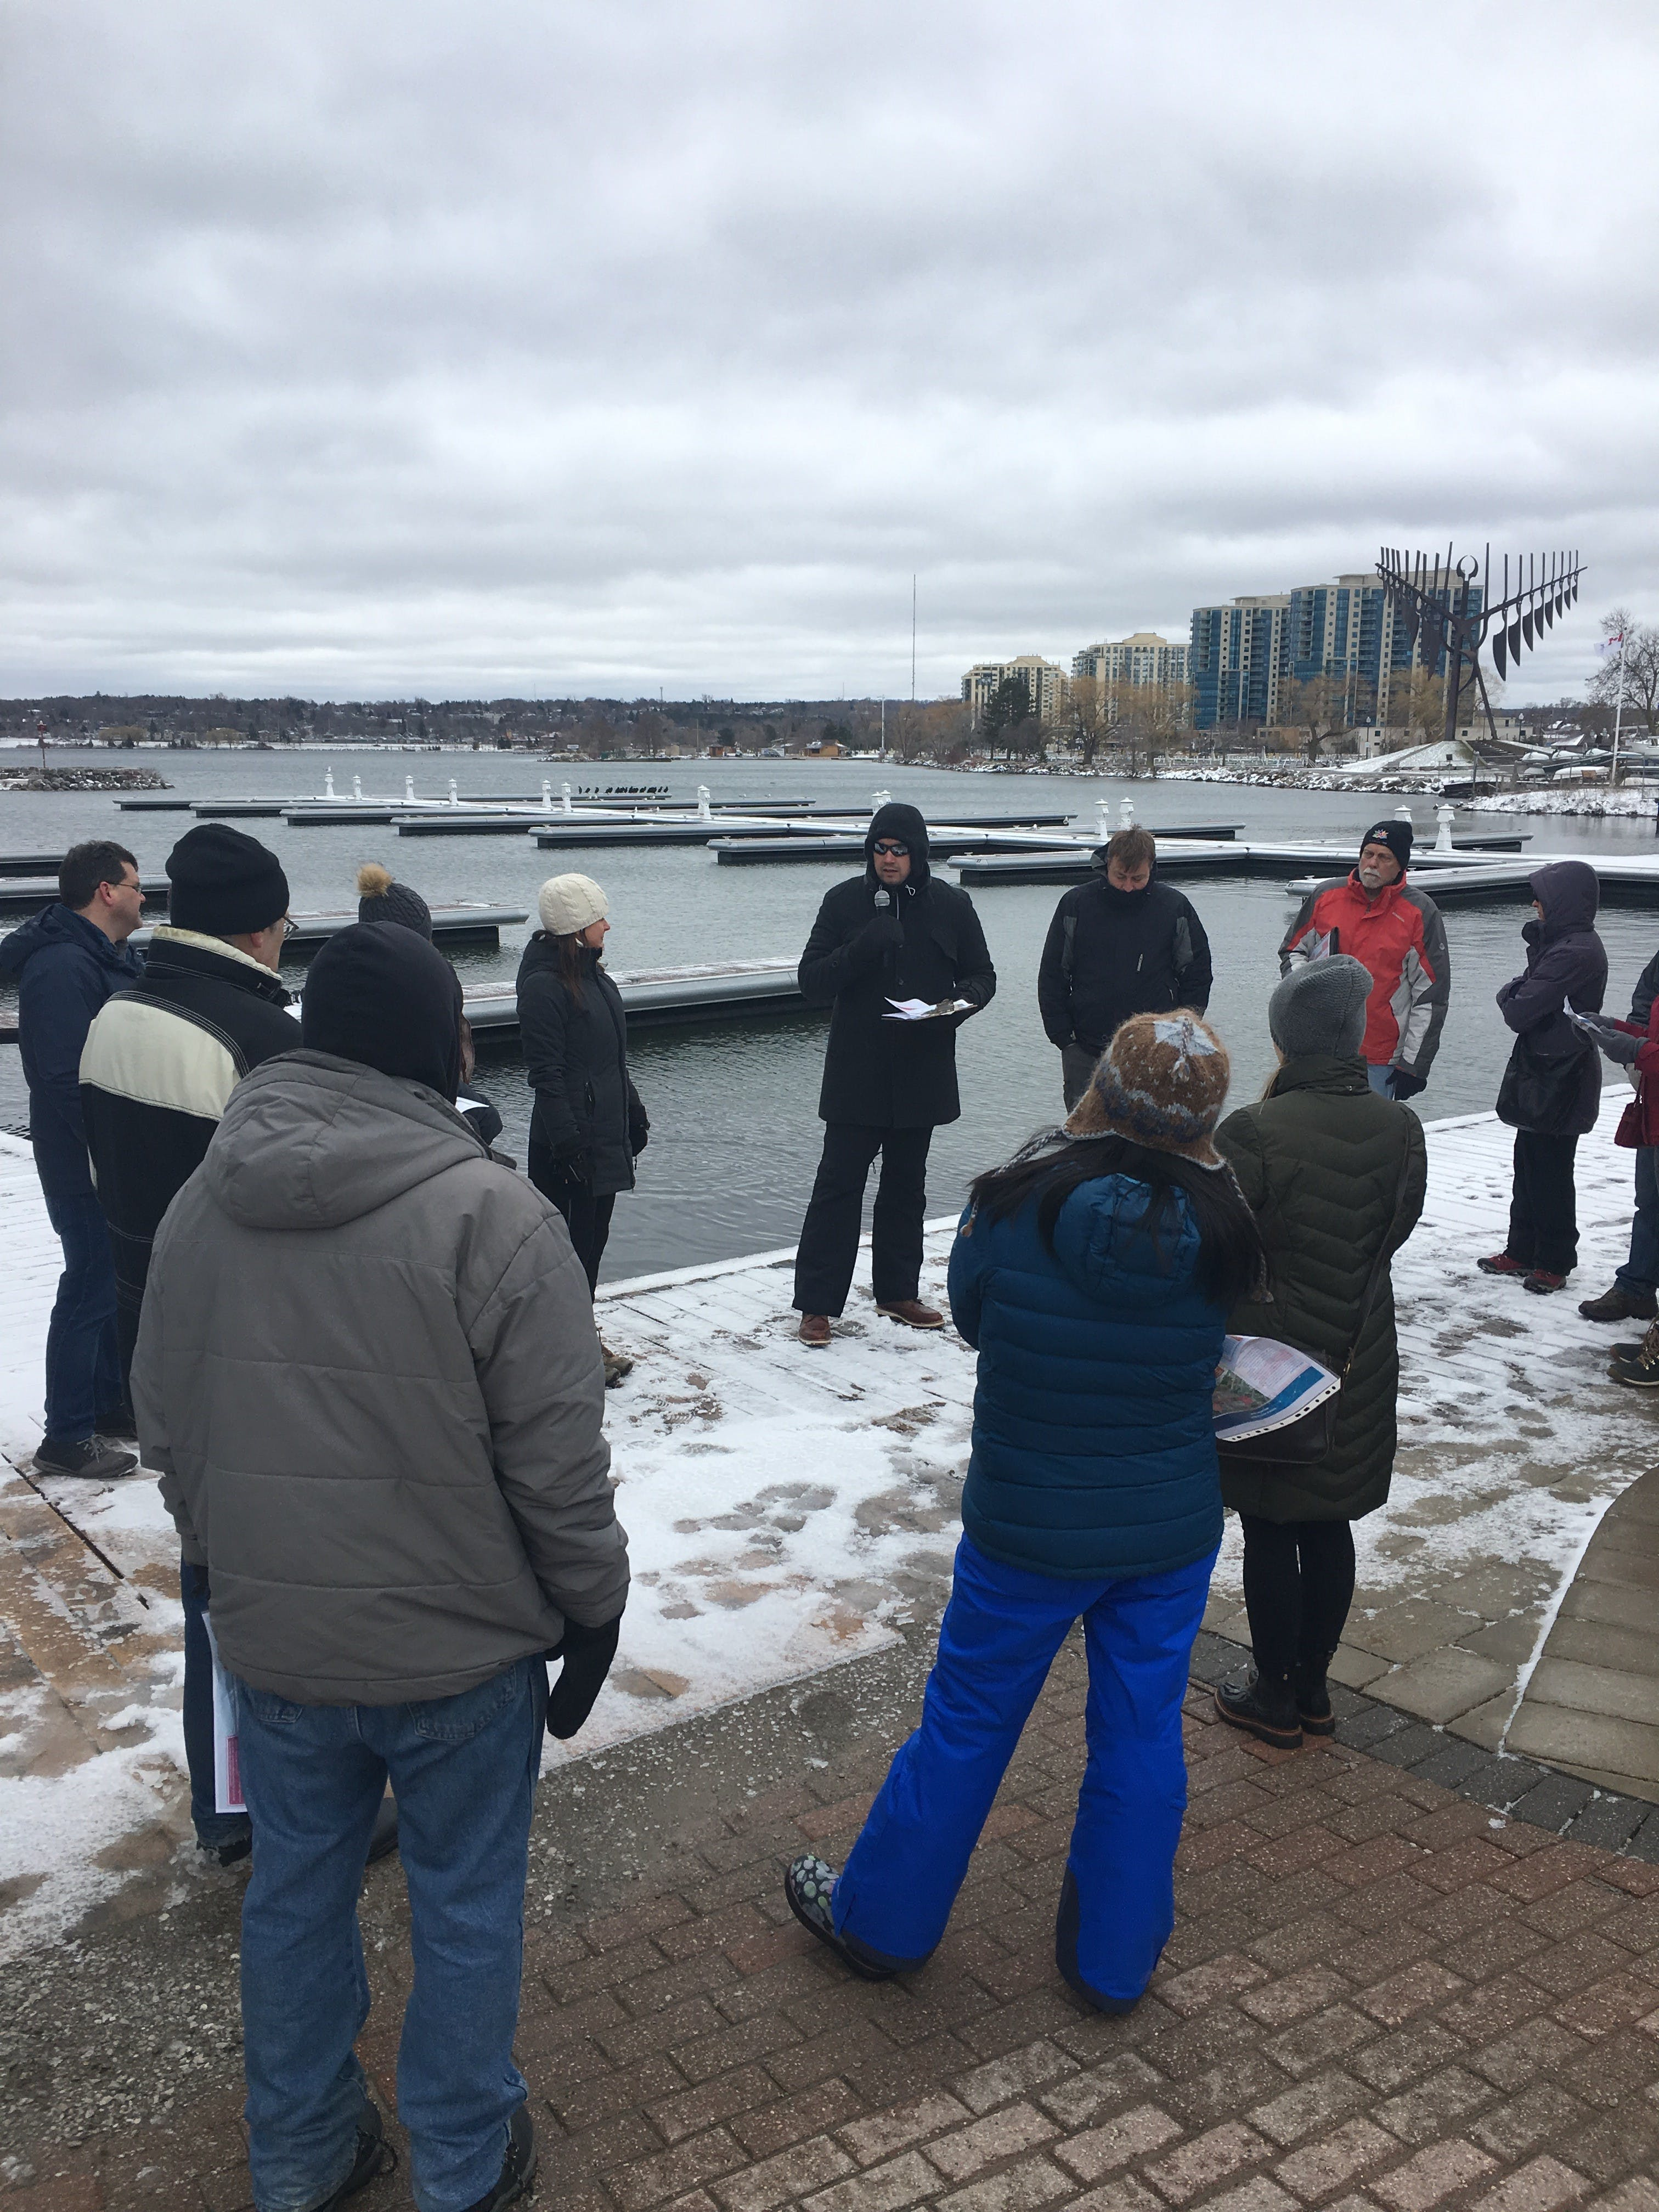 Group discussion during the Waterfront City Walk on Saturday April 27.